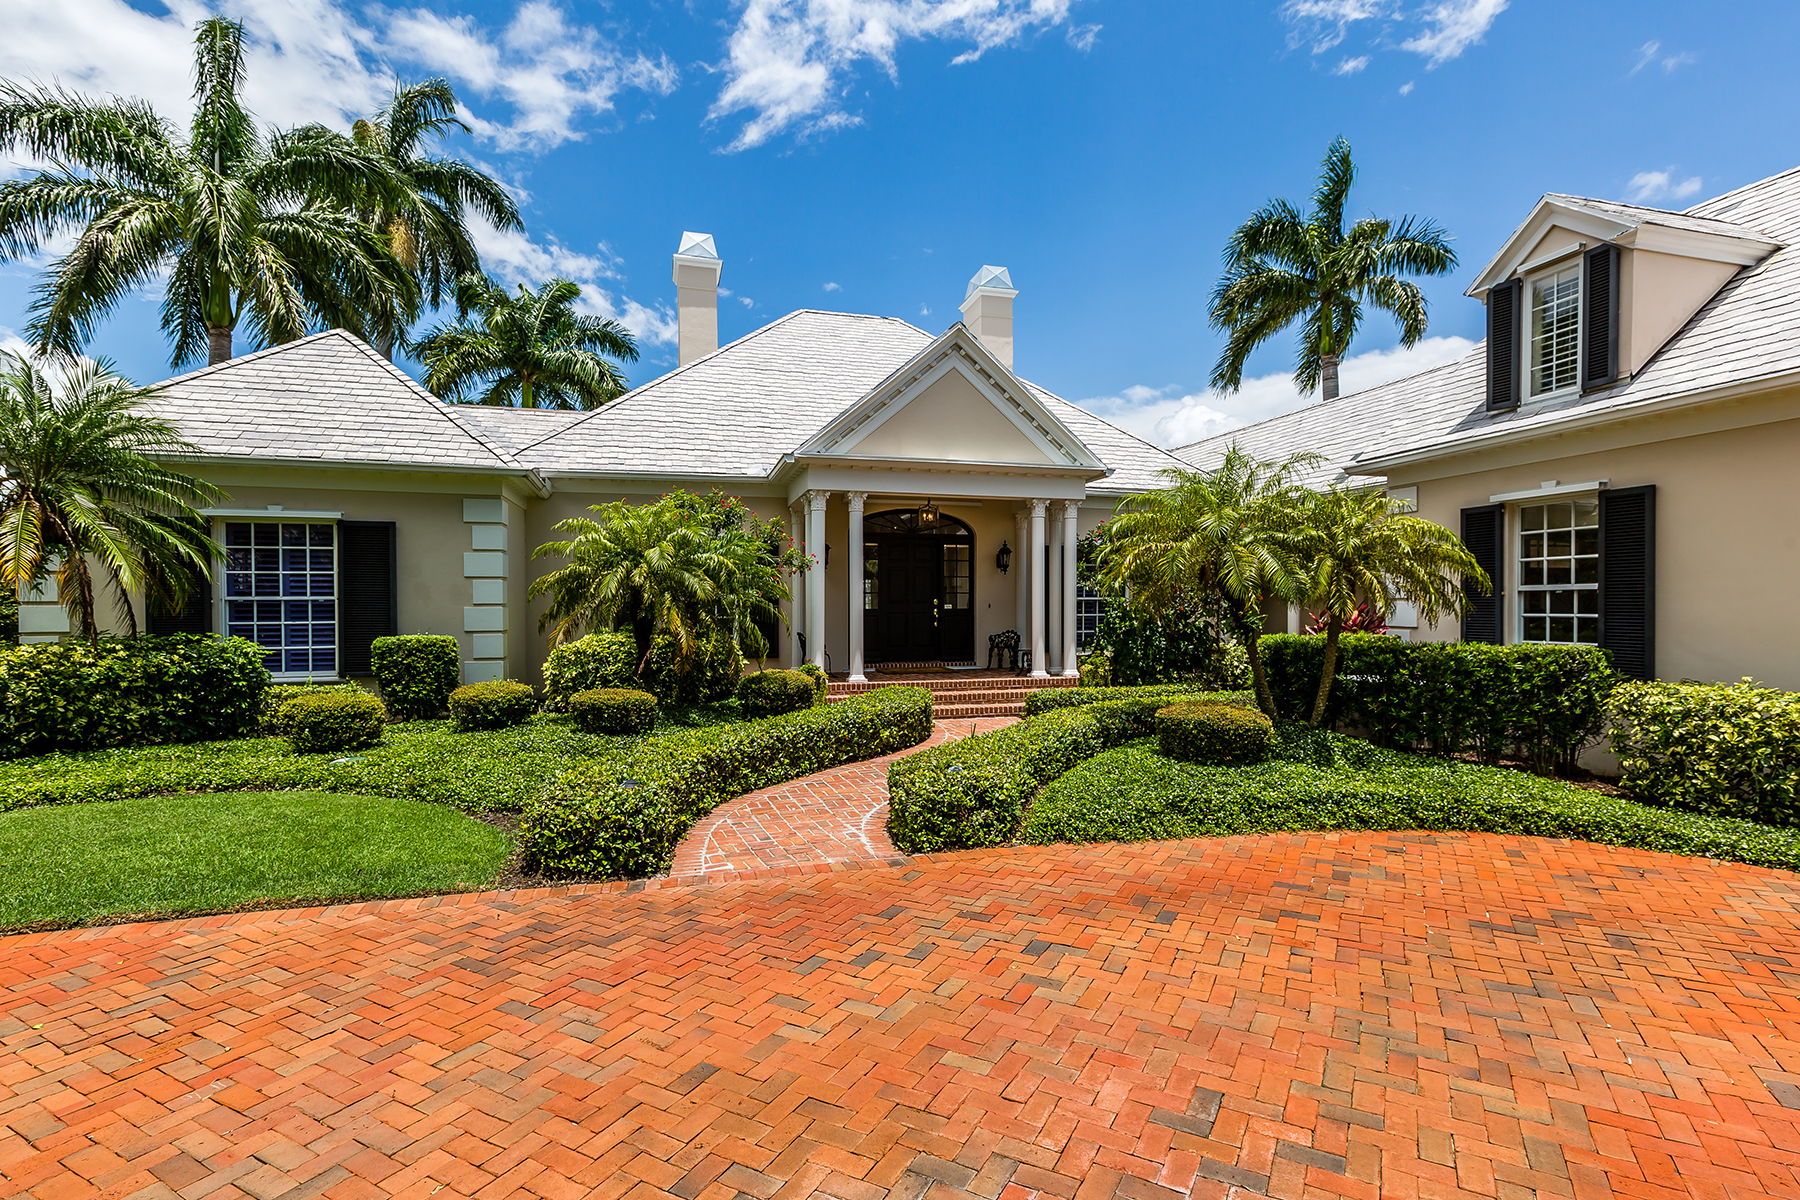 Casa Unifamiliar por un Venta en PORT ROYAL 3333 Gin Ln, Naples, Florida 34102 Estados Unidos